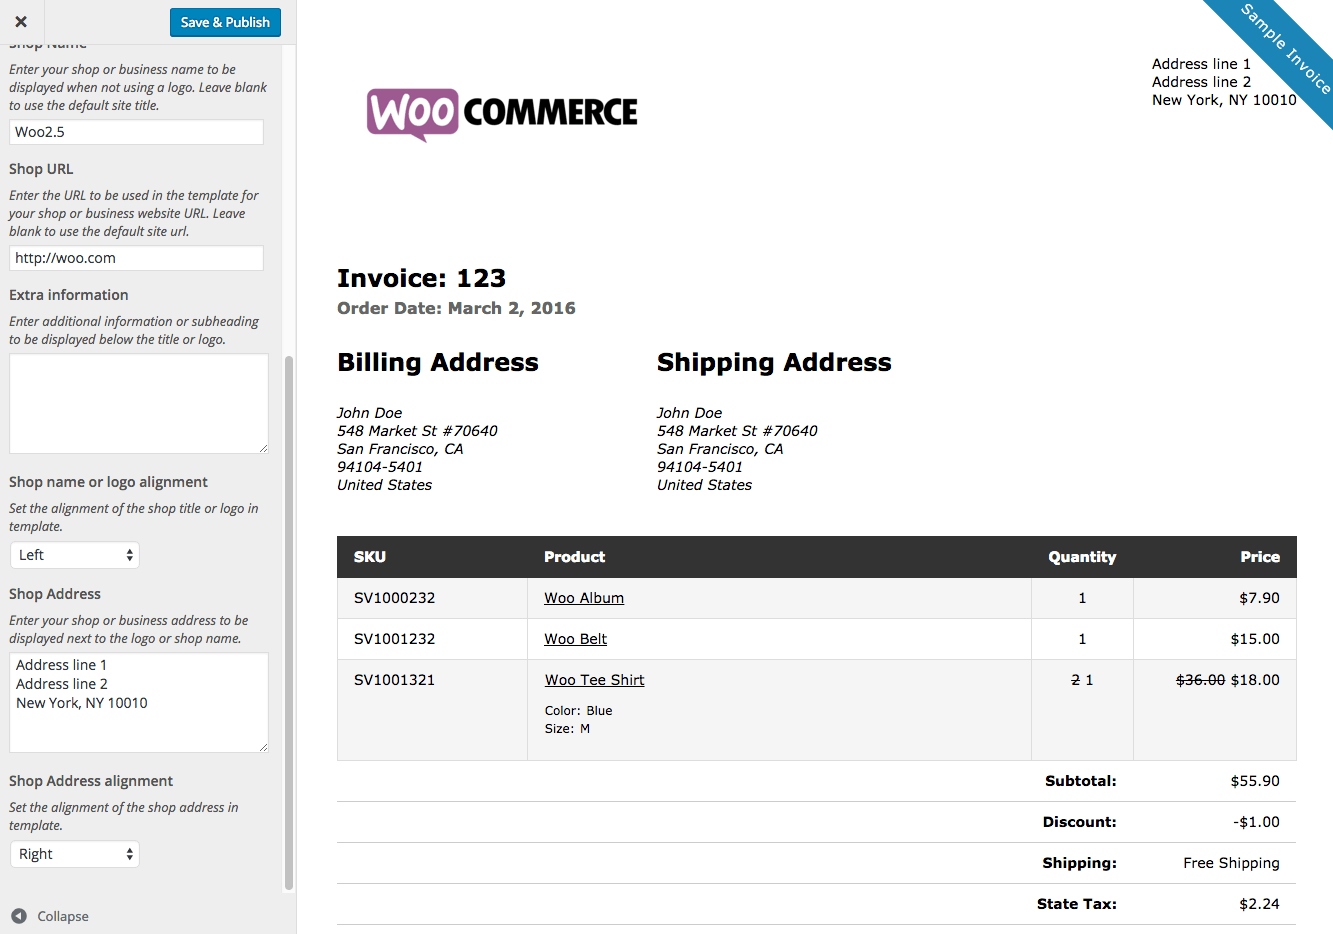 Totallocalus  Pleasing Woocommerce Print Invoices Amp Packing Lists  Woocommerce Docs With Goodlooking Woocommerce Print Invoices  Packing Lists Customizer With Cute Print Cash Receipt Also Receipt No In Addition How To Write Receipts And How Do I Make A Receipt As Well As Faulty Goods No Receipt Additionally Payments And Receipts From Docswoocommercecom With Totallocalus  Goodlooking Woocommerce Print Invoices Amp Packing Lists  Woocommerce Docs With Cute Woocommerce Print Invoices  Packing Lists Customizer And Pleasing Print Cash Receipt Also Receipt No In Addition How To Write Receipts From Docswoocommercecom